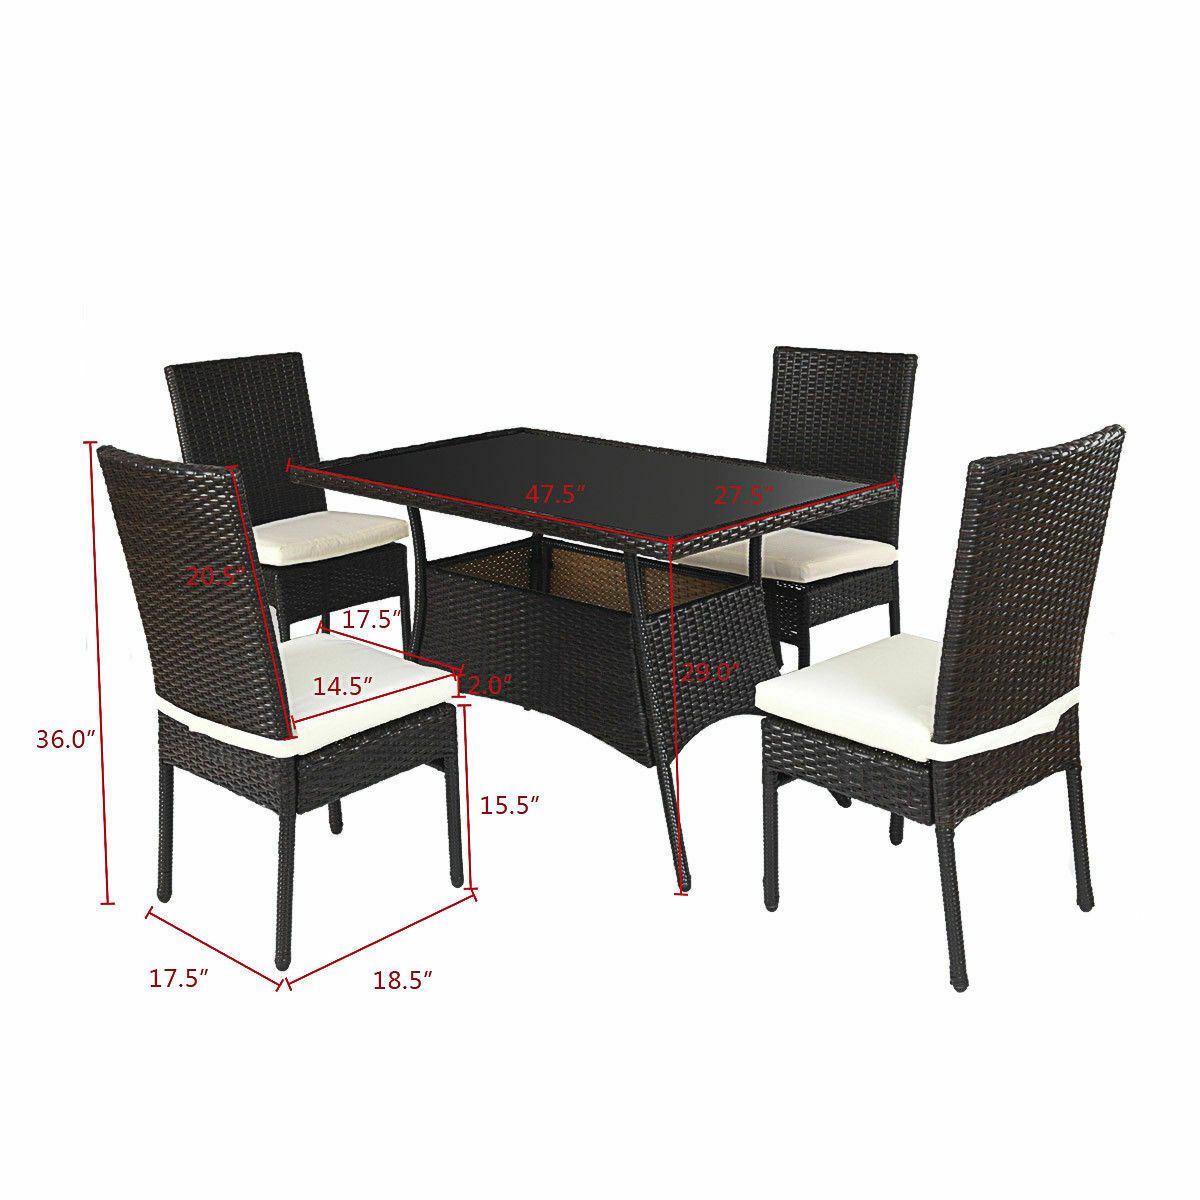 Outdoor Patio Furniture Dining Table Costway 5 Piece Outdoor Patio Furniture Rattan Dining Table Cushioned Chairs Set